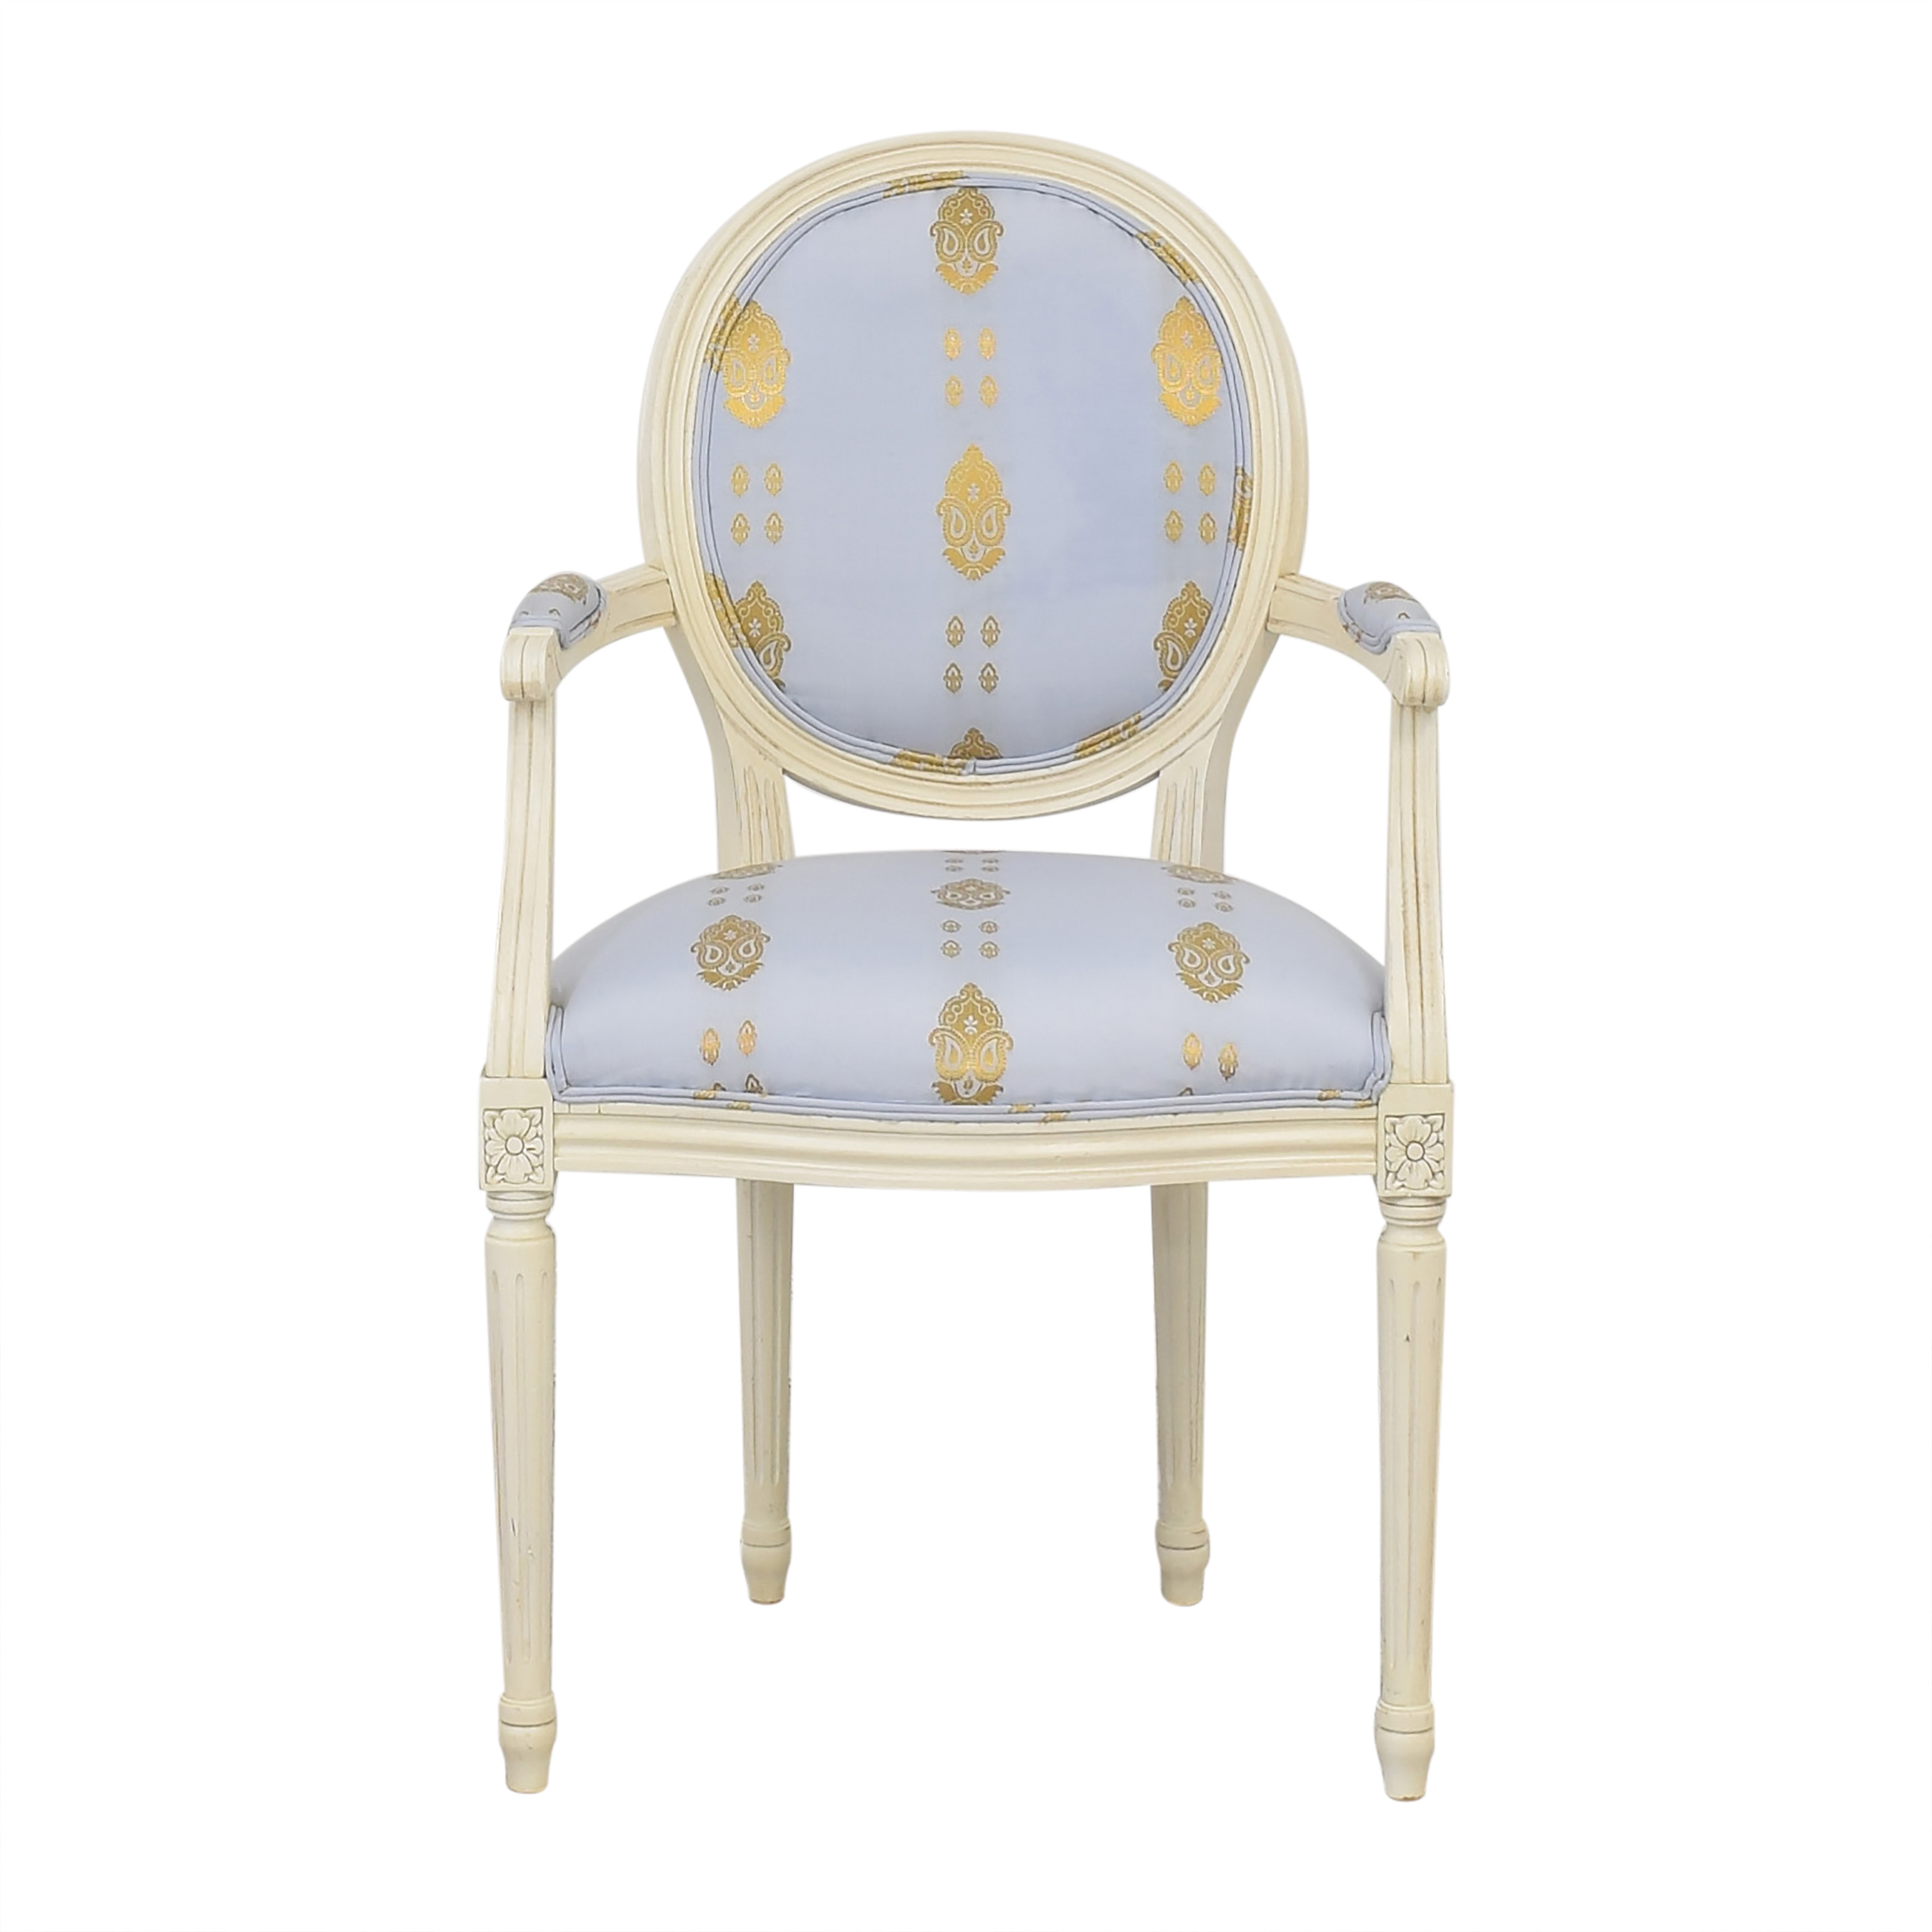 Ethan Allen Ethan Allen French Style Arm Chair